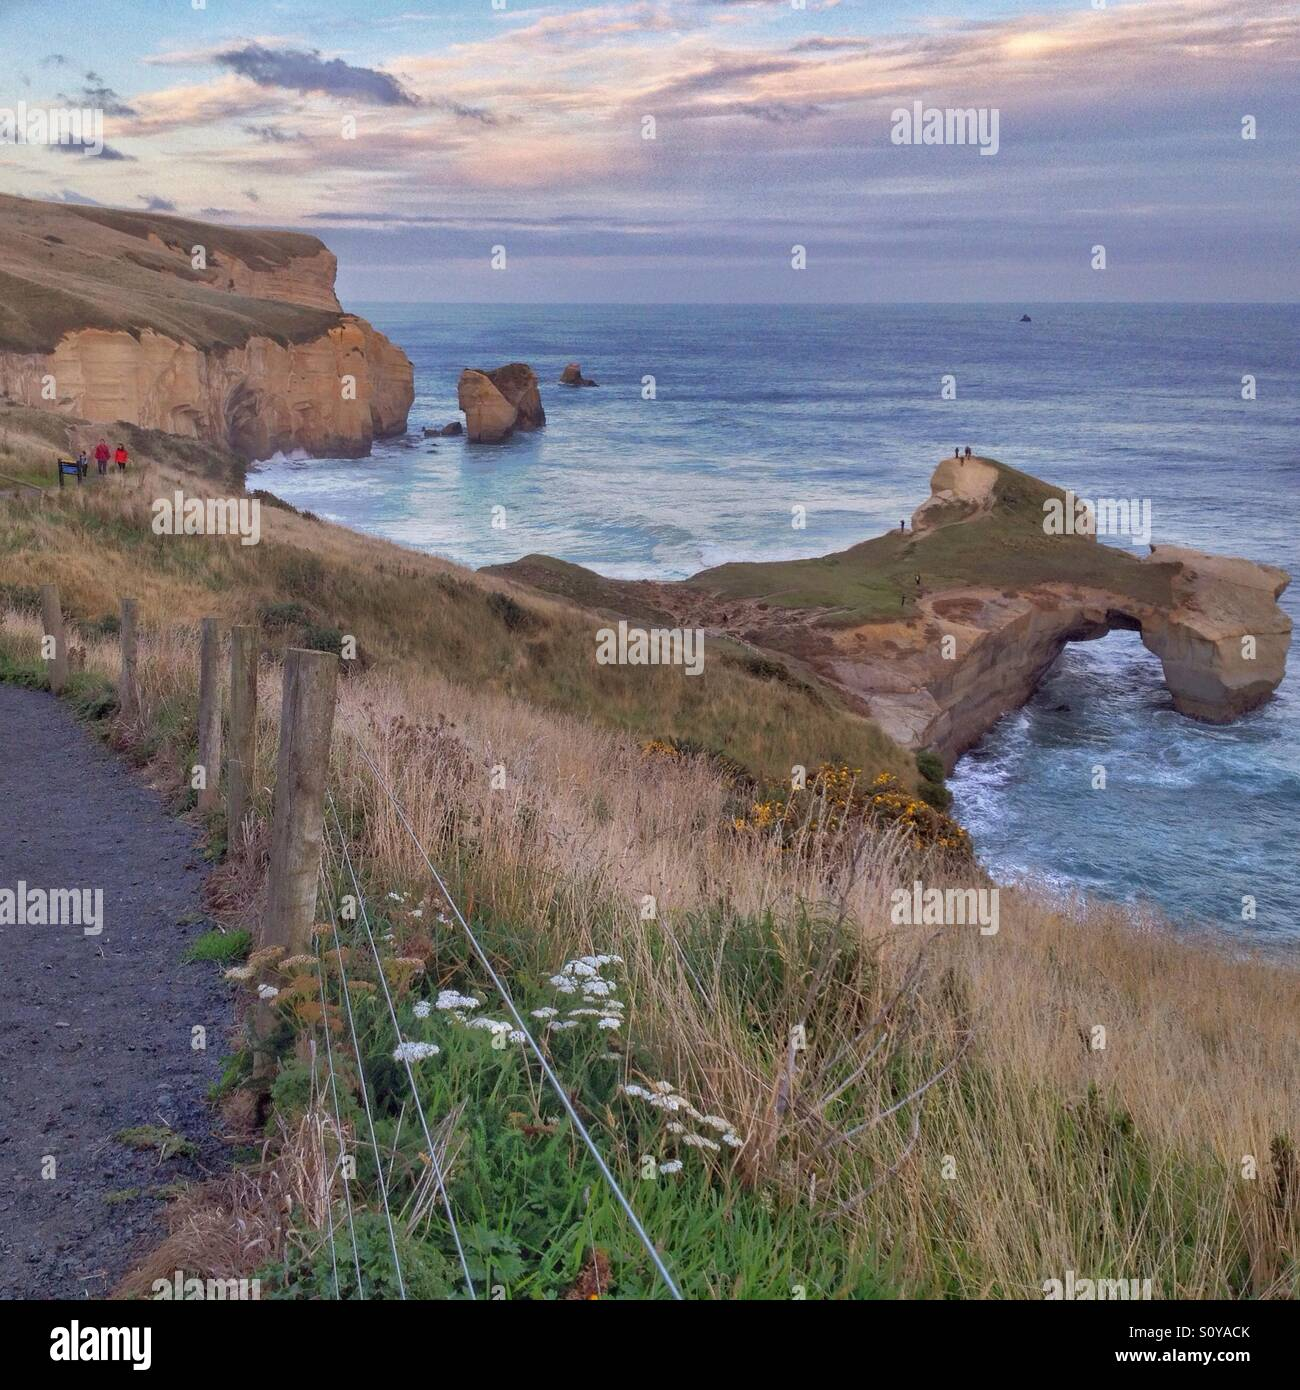 One evening at Tunnel Beach, New Zealand Stock Photo